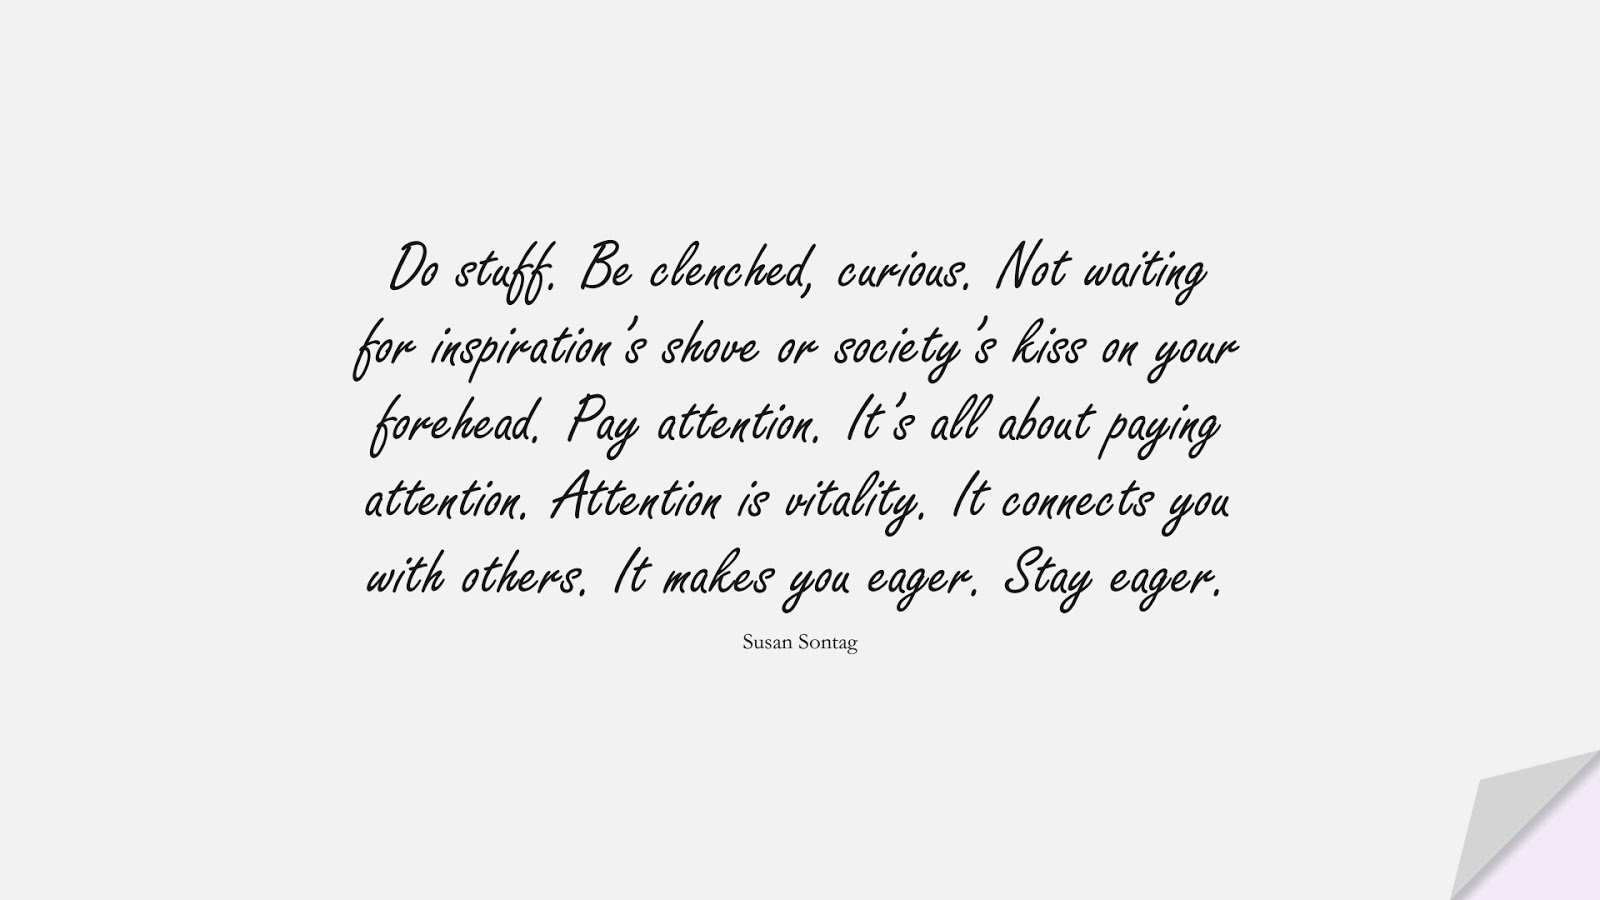 Do stuff. Be clenched, curious. Not waiting for inspiration's shove or society's kiss on your forehead. Pay attention. It's all about paying attention. Attention is vitality. It connects you with others. It makes you eager. Stay eager. (Susan Sontag);  #LifeQuotes